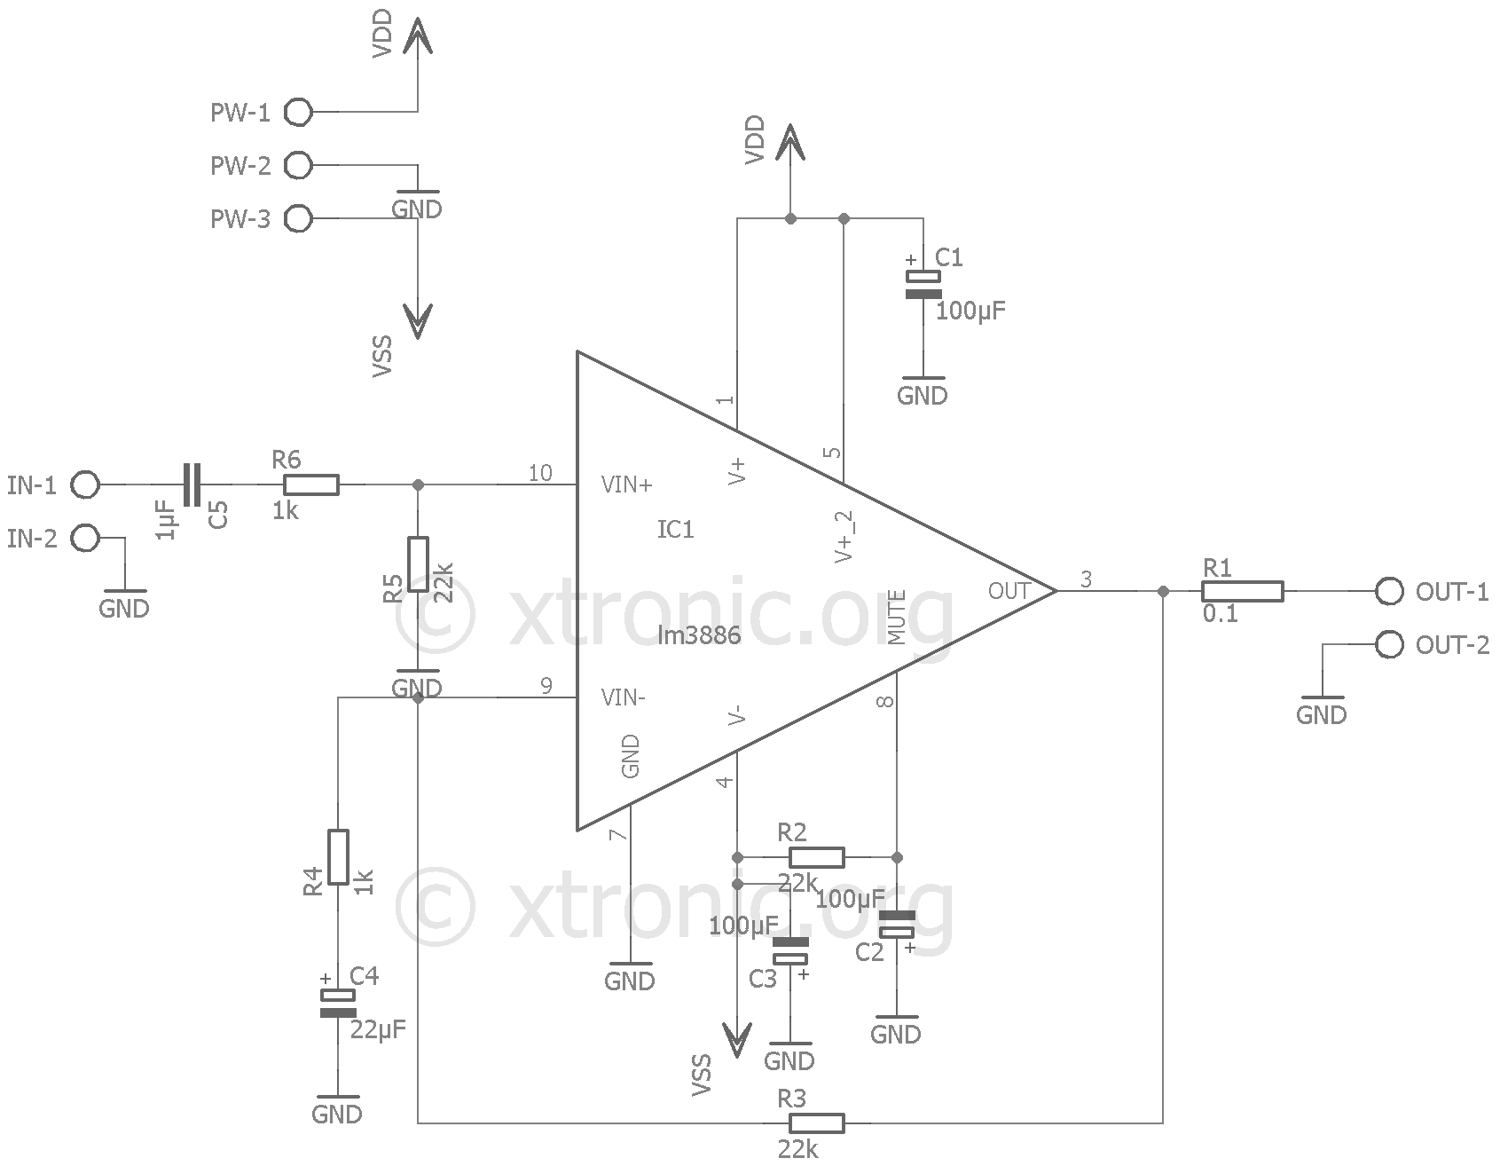 lm3886 minimus power schematic 700x544 lm3886 minimus